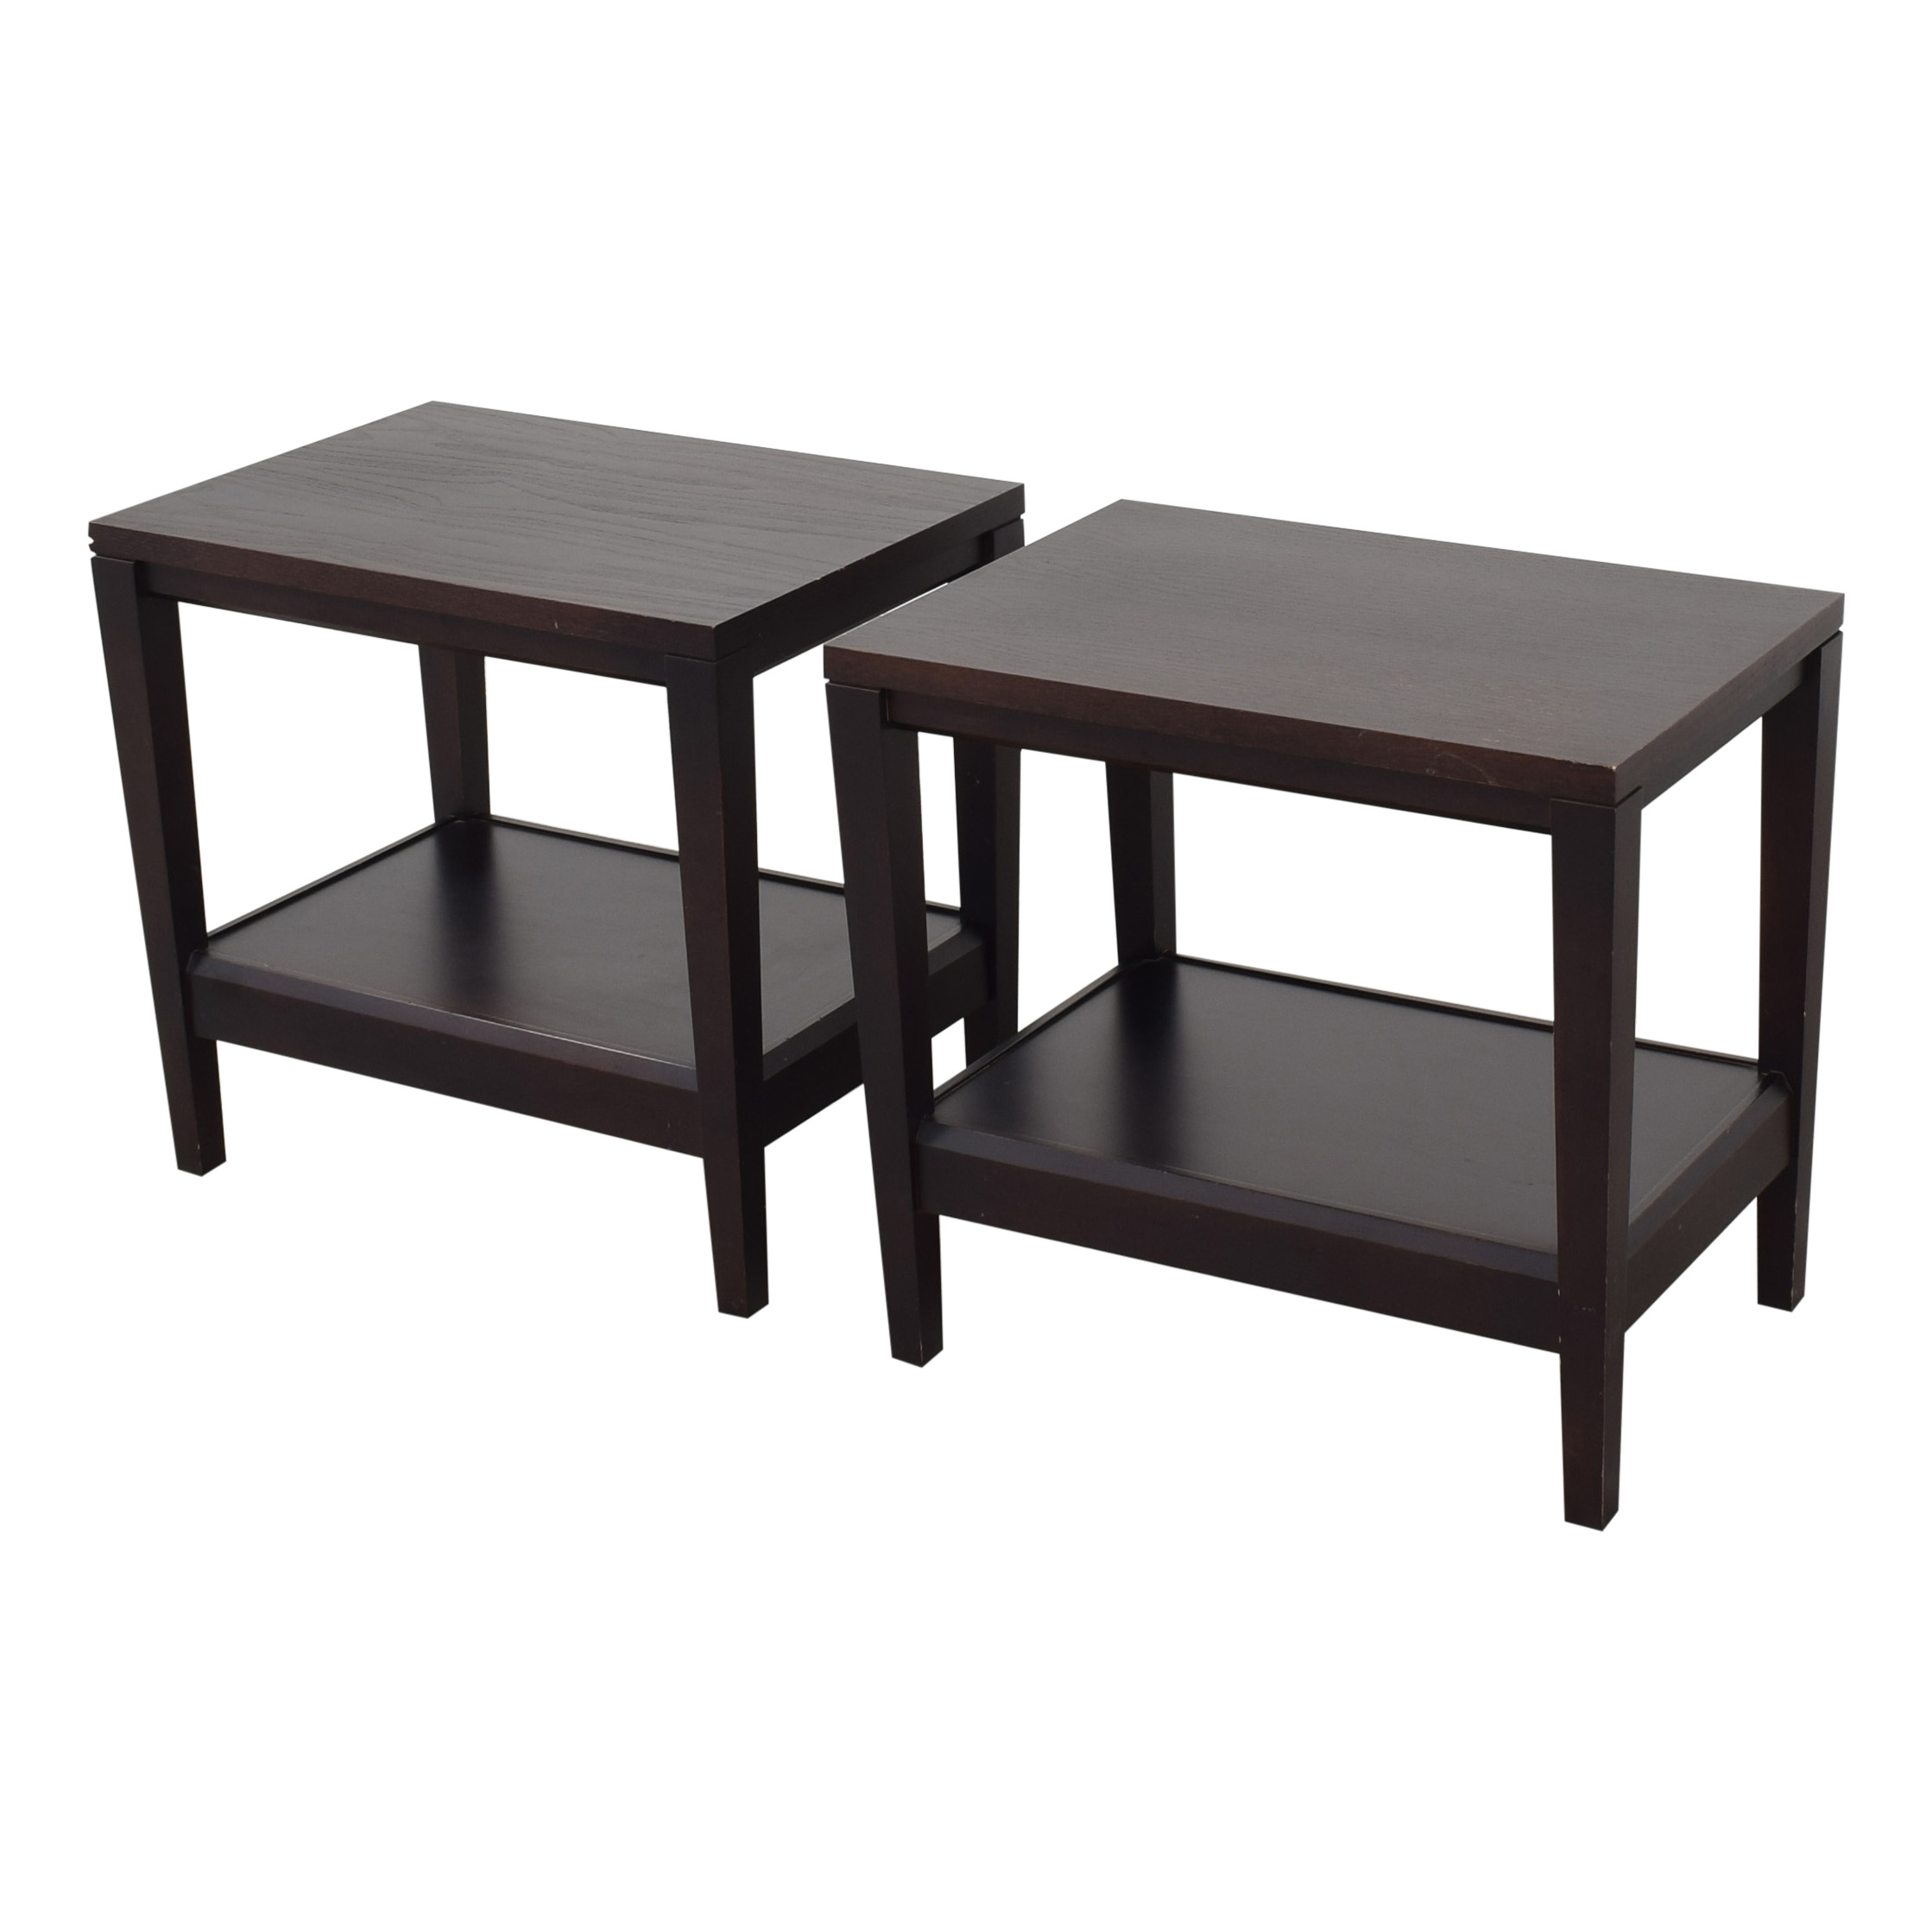 Baronet Crate & Barrel Baronet Side Tables for sale